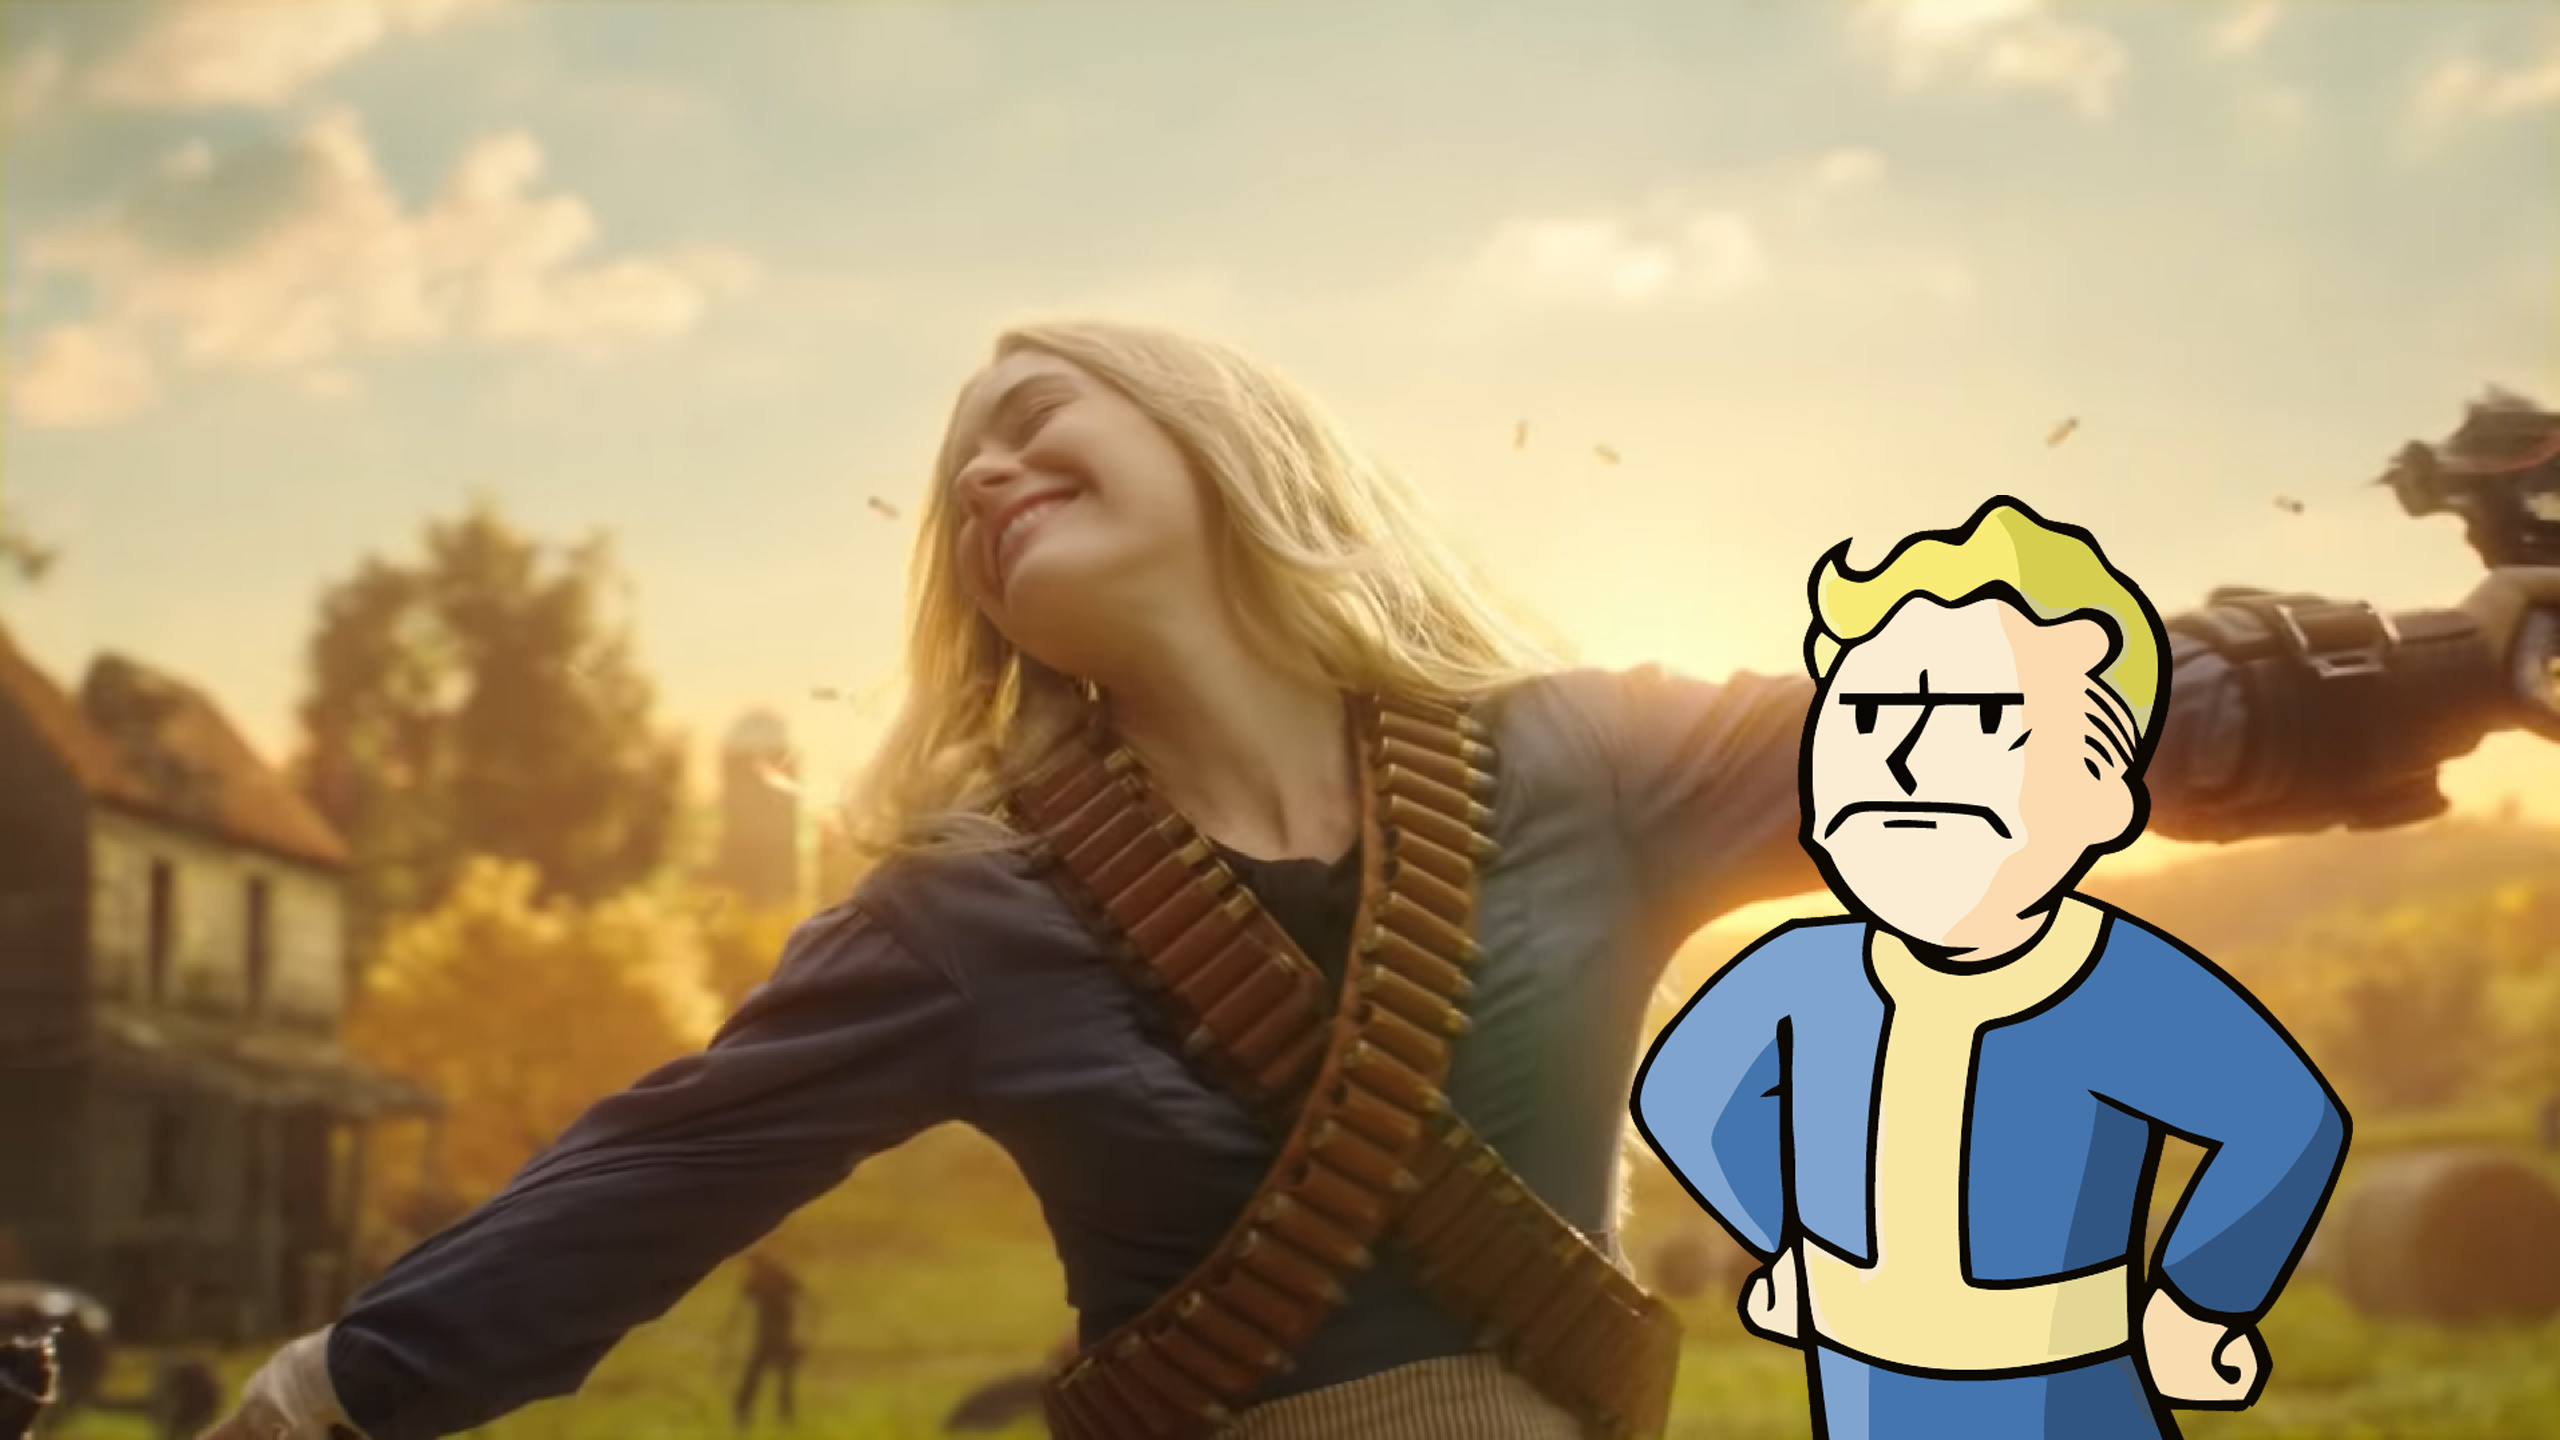 Bethesda could be sued for Fallout 76 - GameAxis